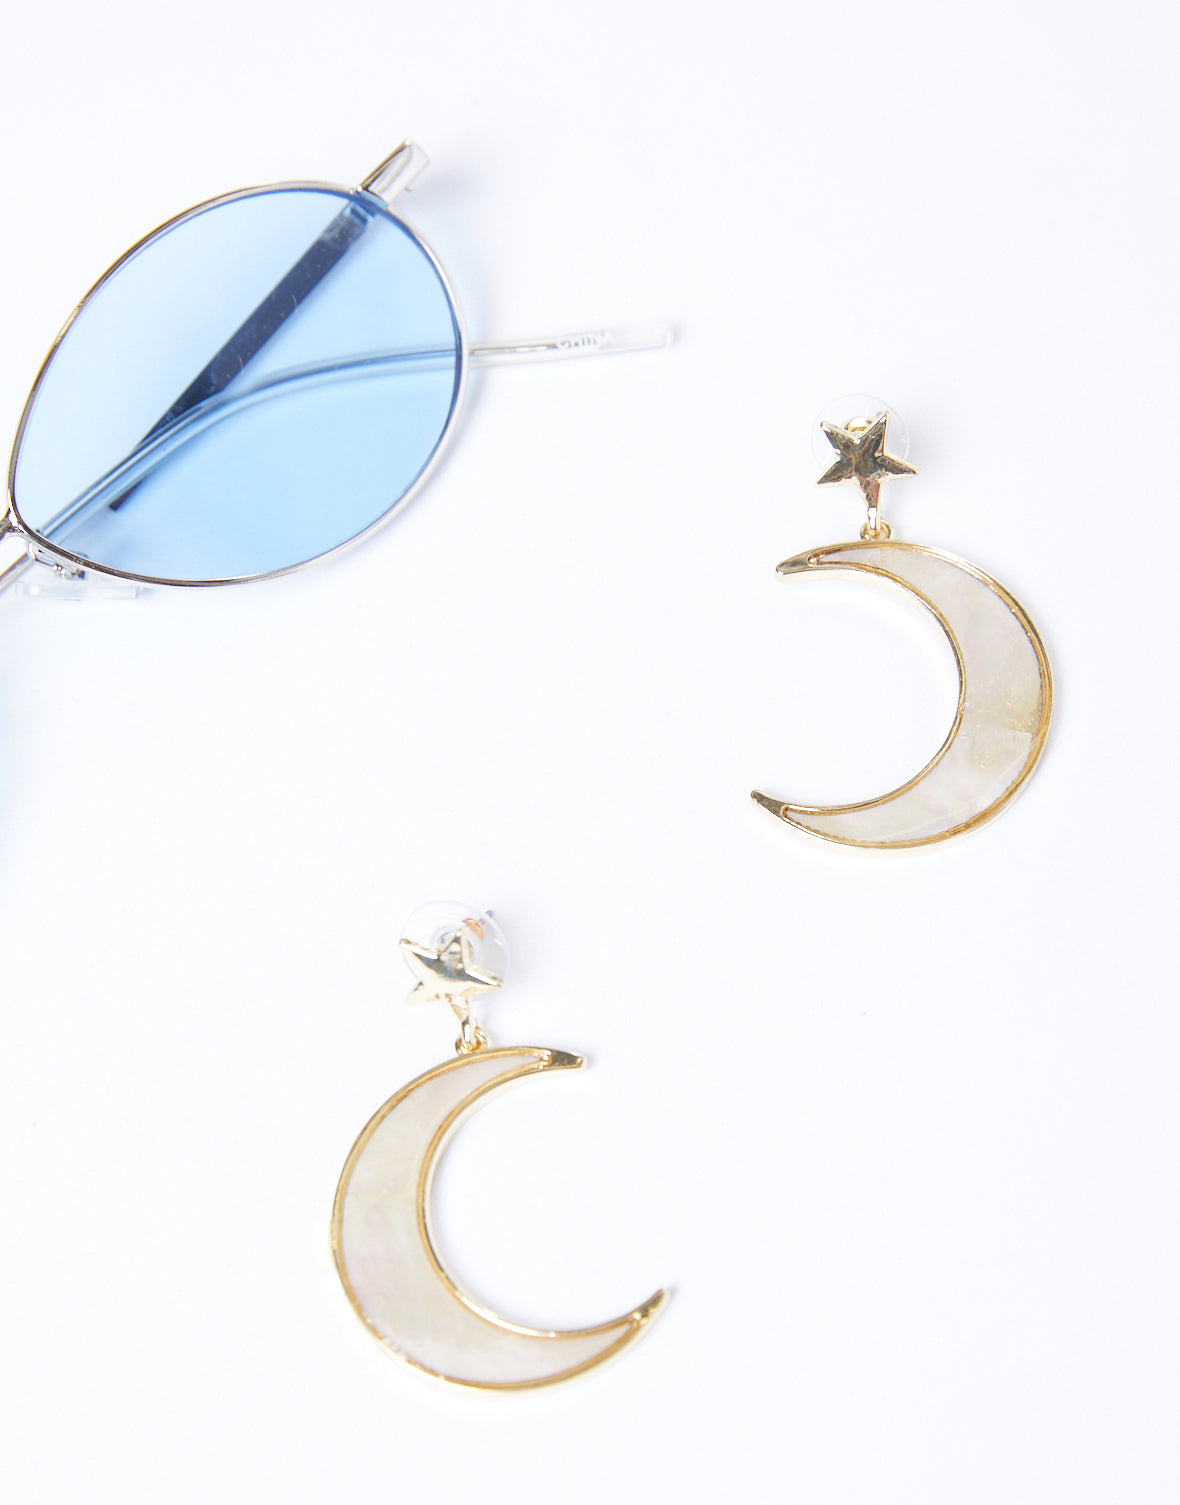 Celestial Iridescent Moon Earrings